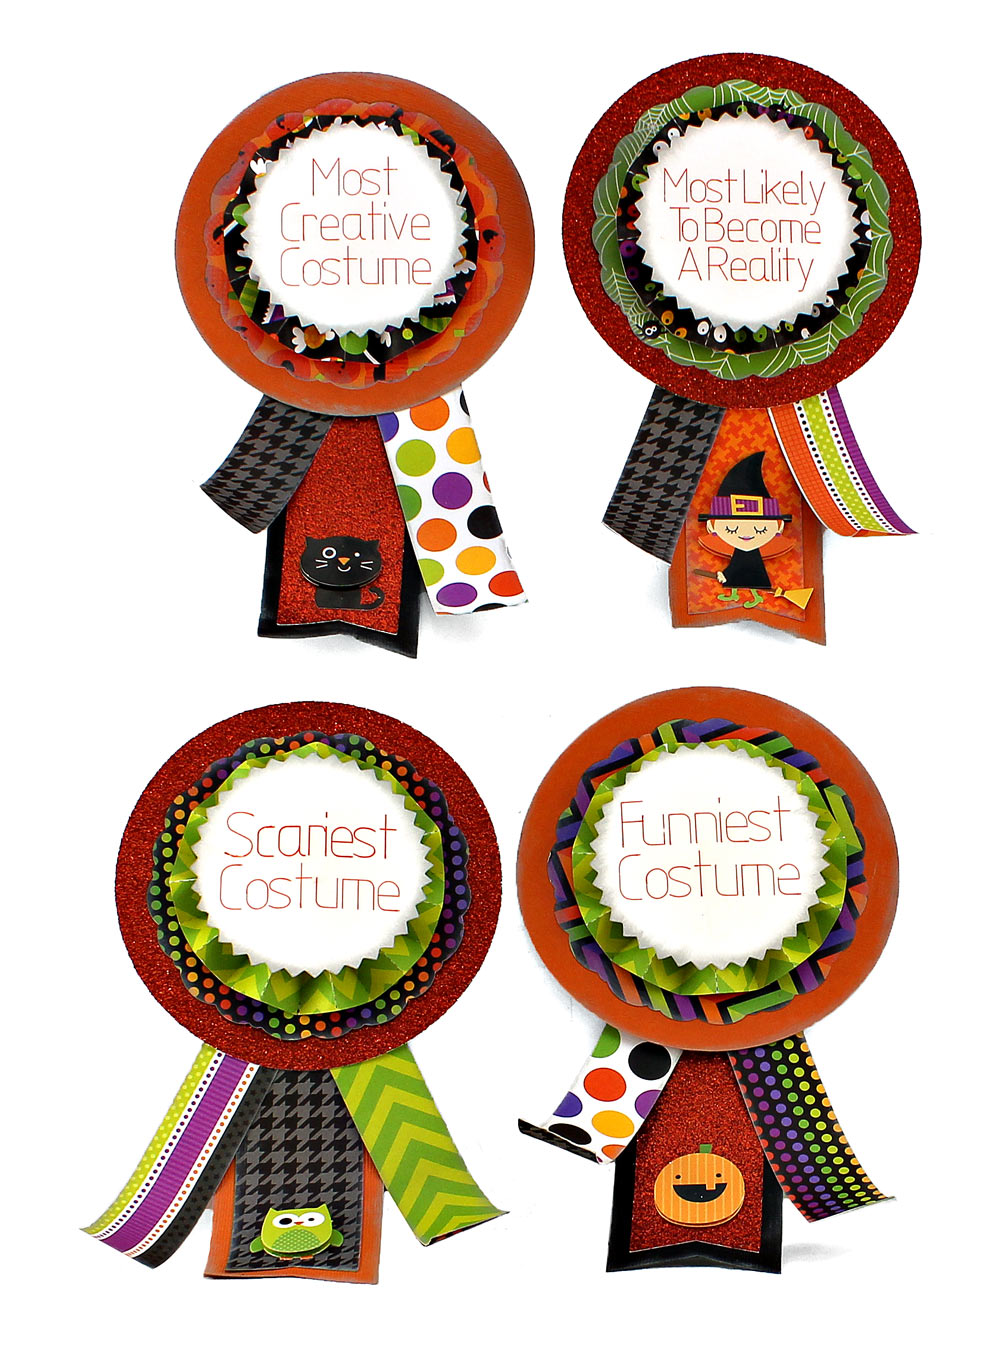 Halloween Costume Party Ribbons - Pazzles Craft Room